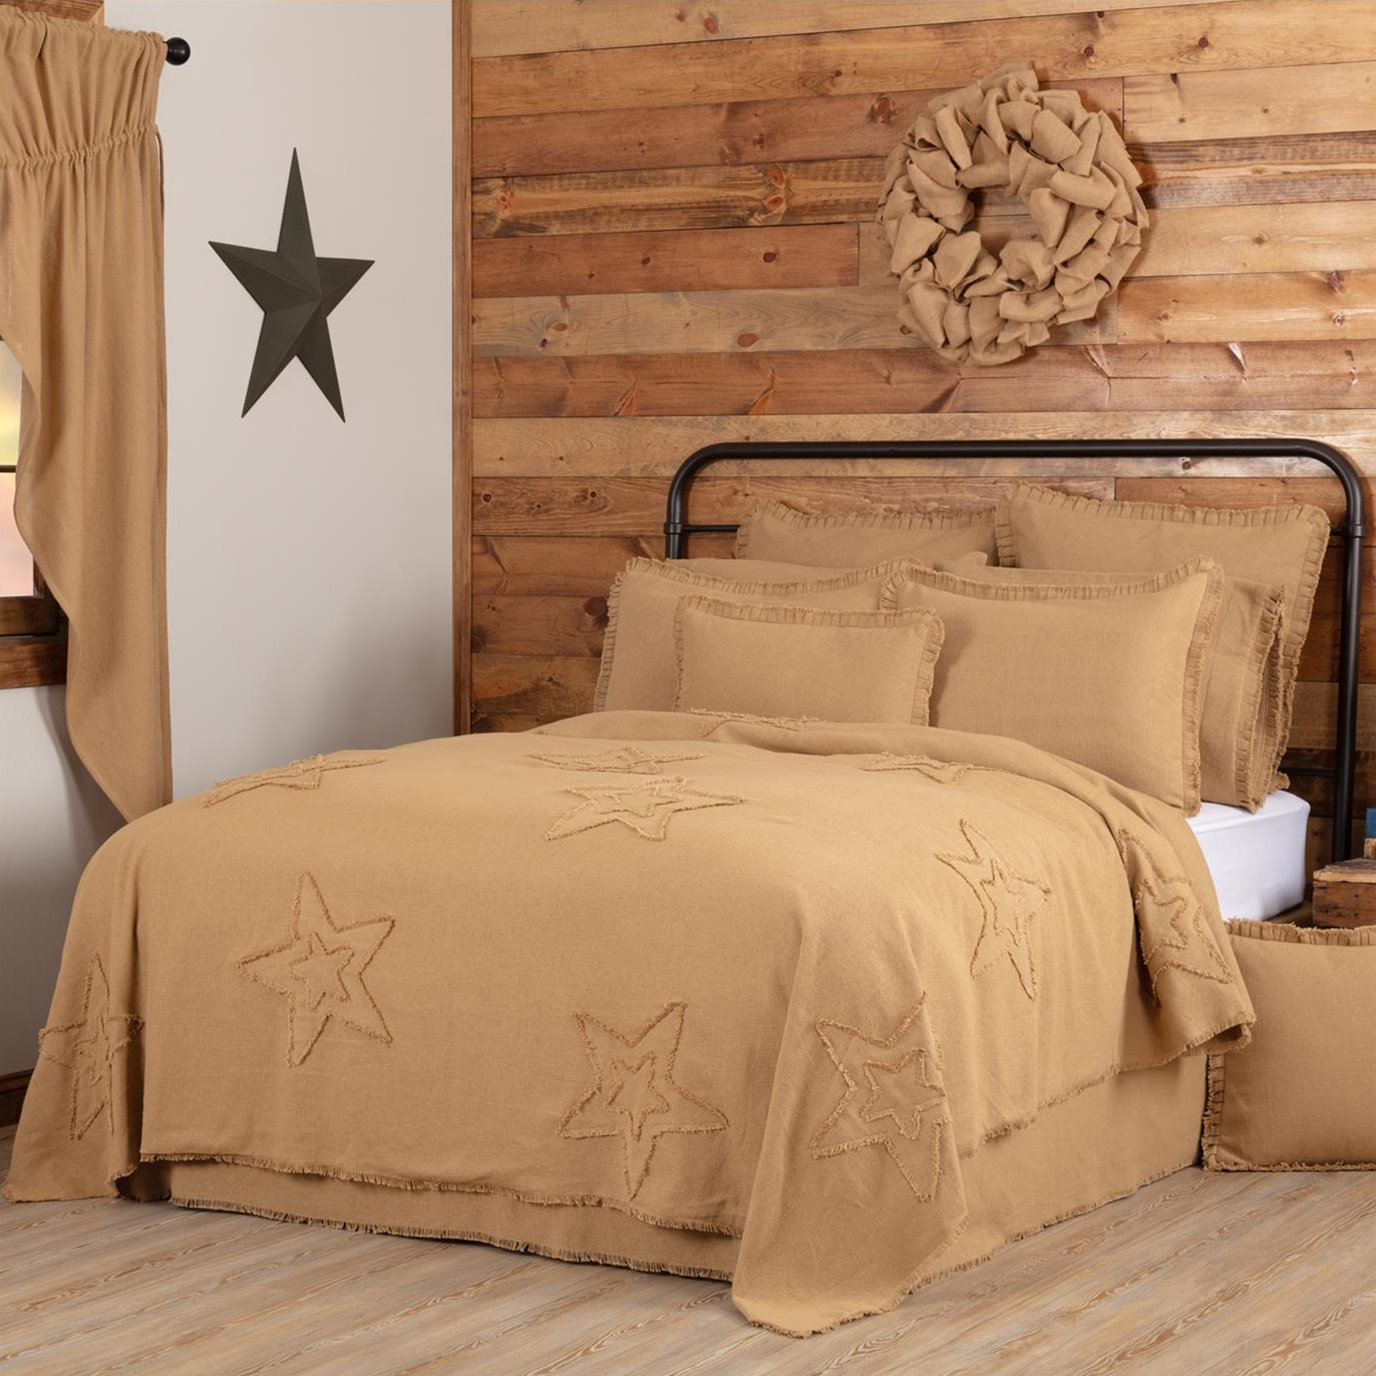 Burlap Natural Star King Coverlet 108Wx96L